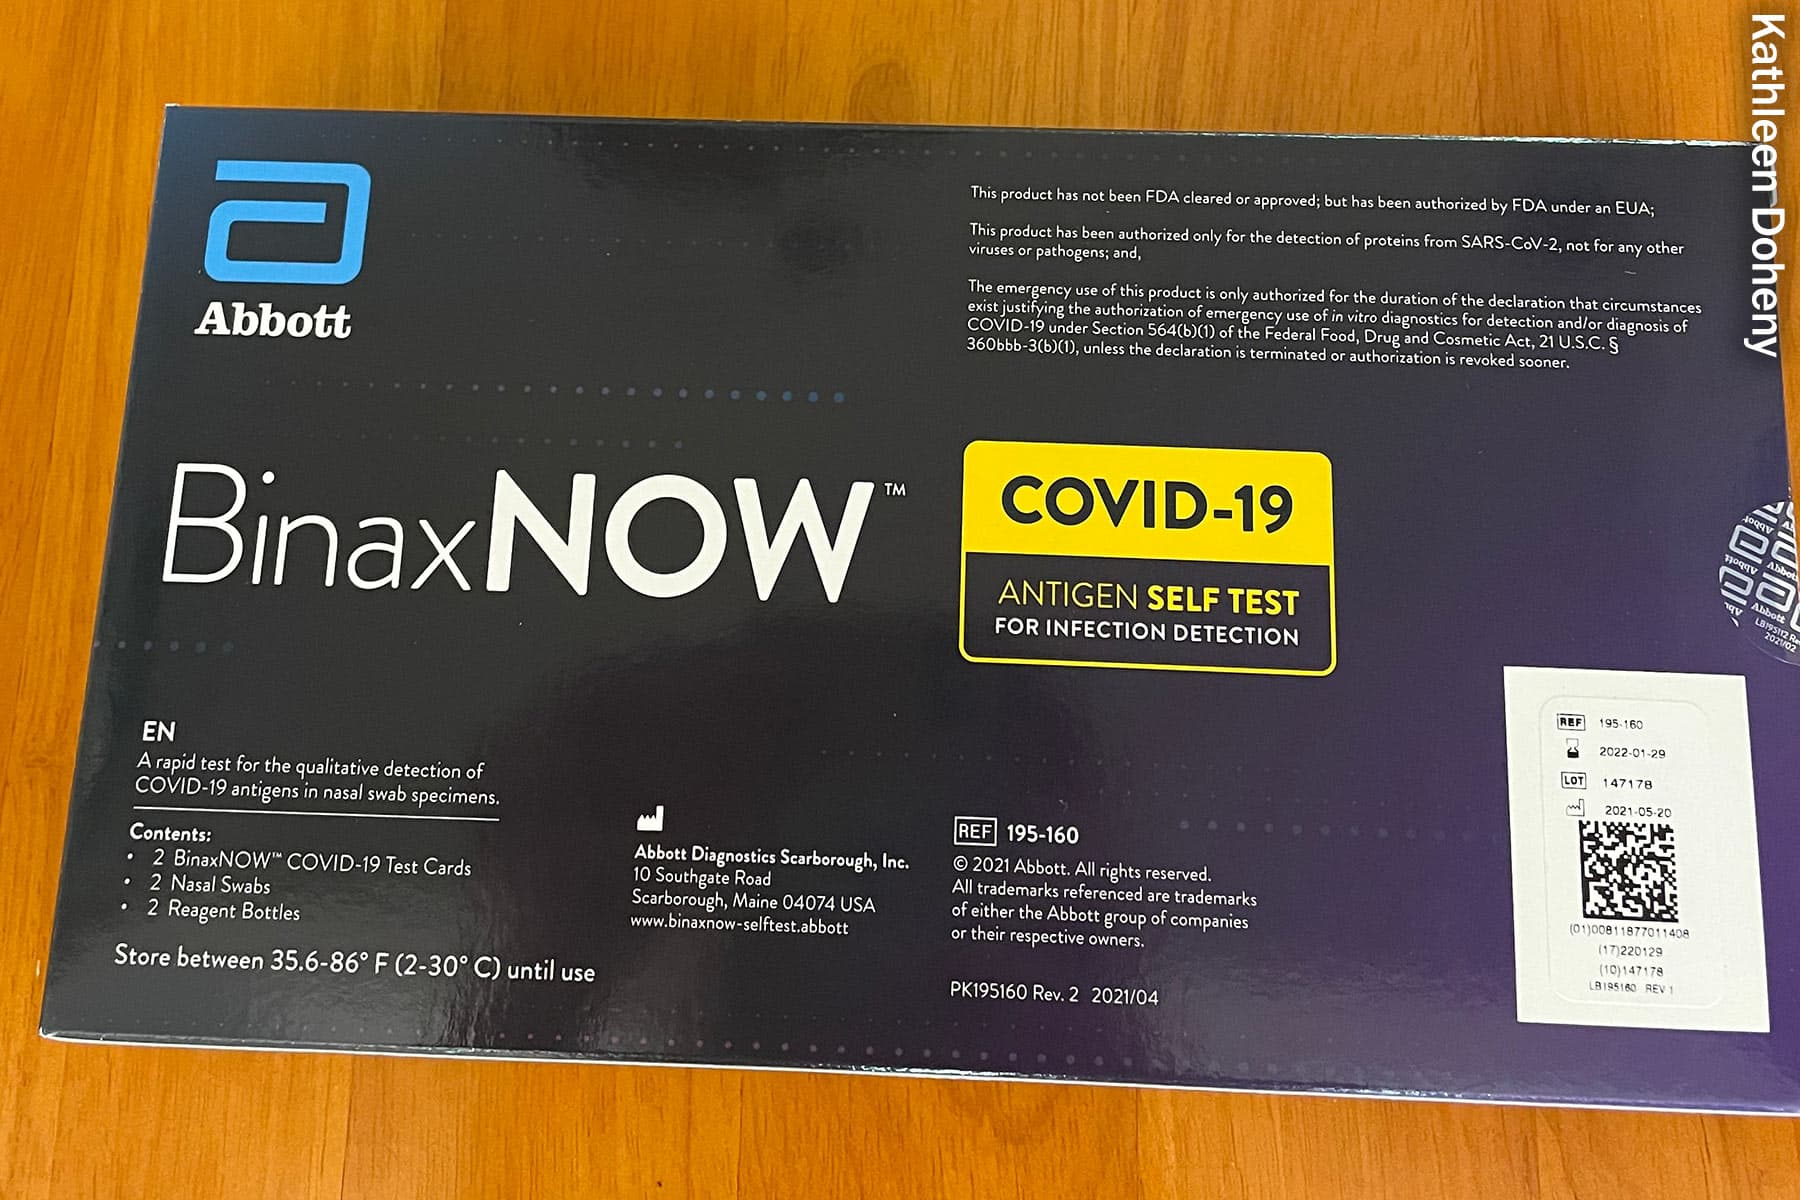 U.S. Spends $1 Billion to Make More Home COVID Tests Available  - web md